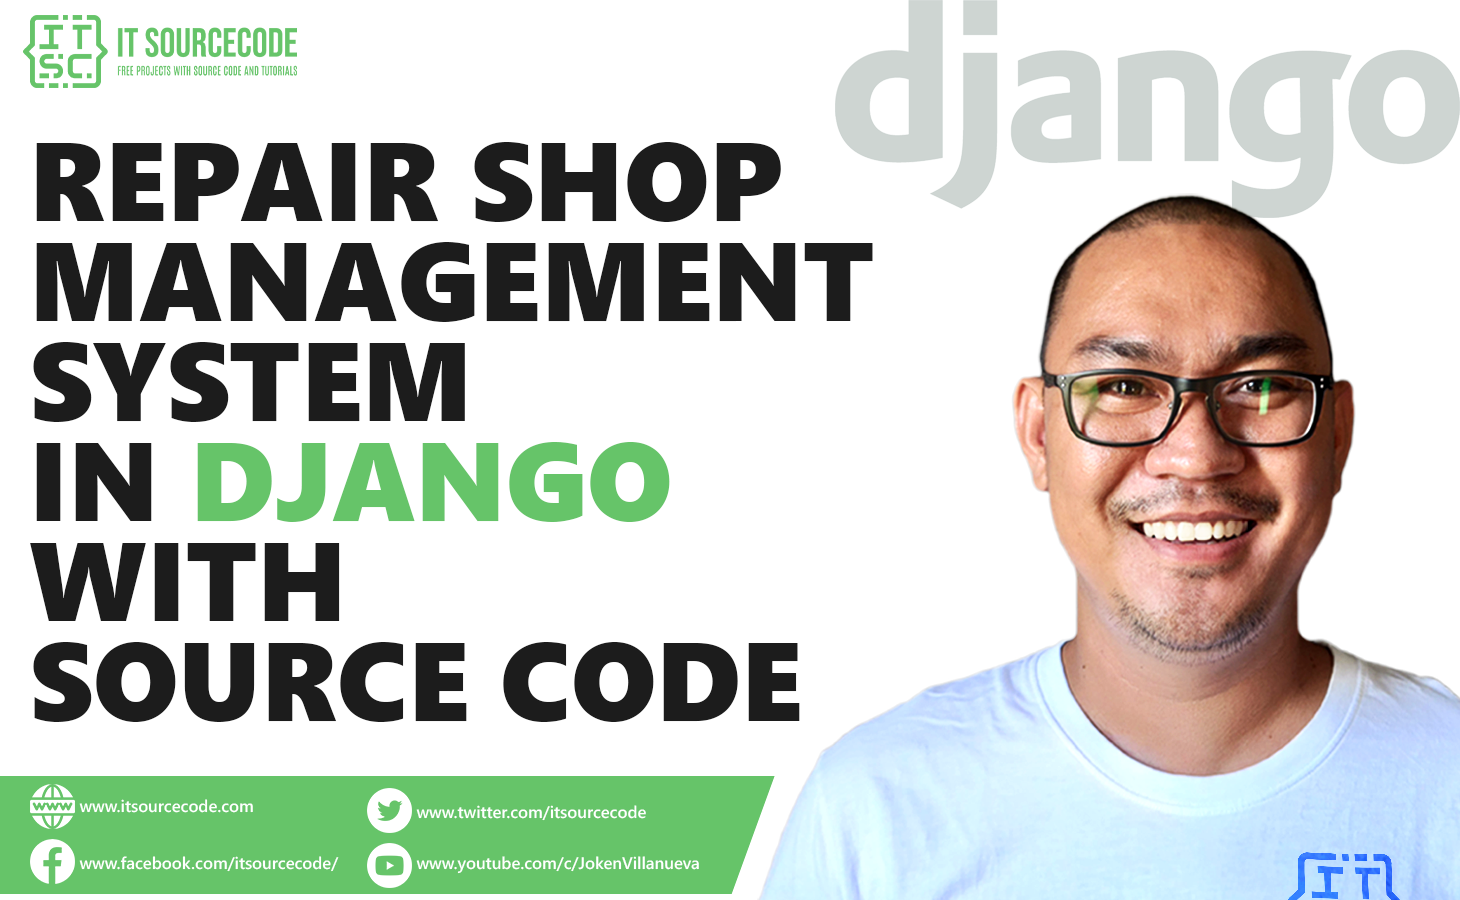 Repair Shop Management System Project in Django with Source Code